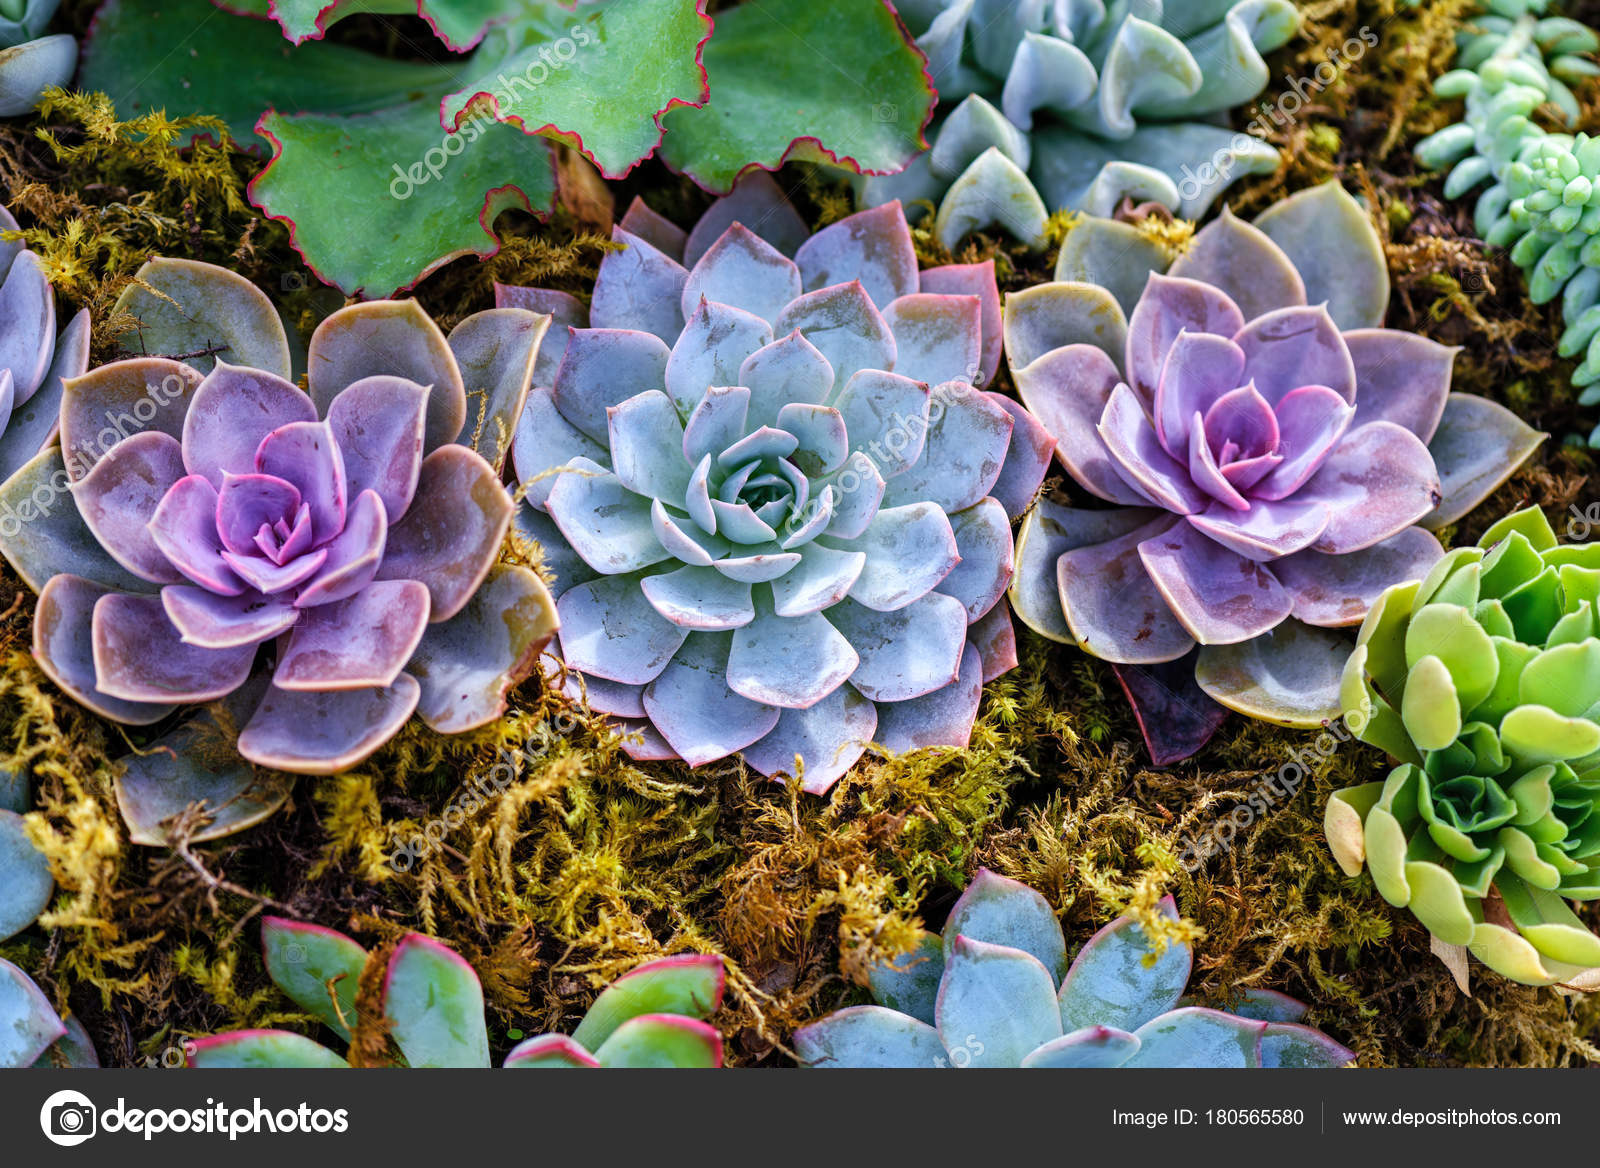 top view of small ornamental plants of thorny cacti with spines and leaves